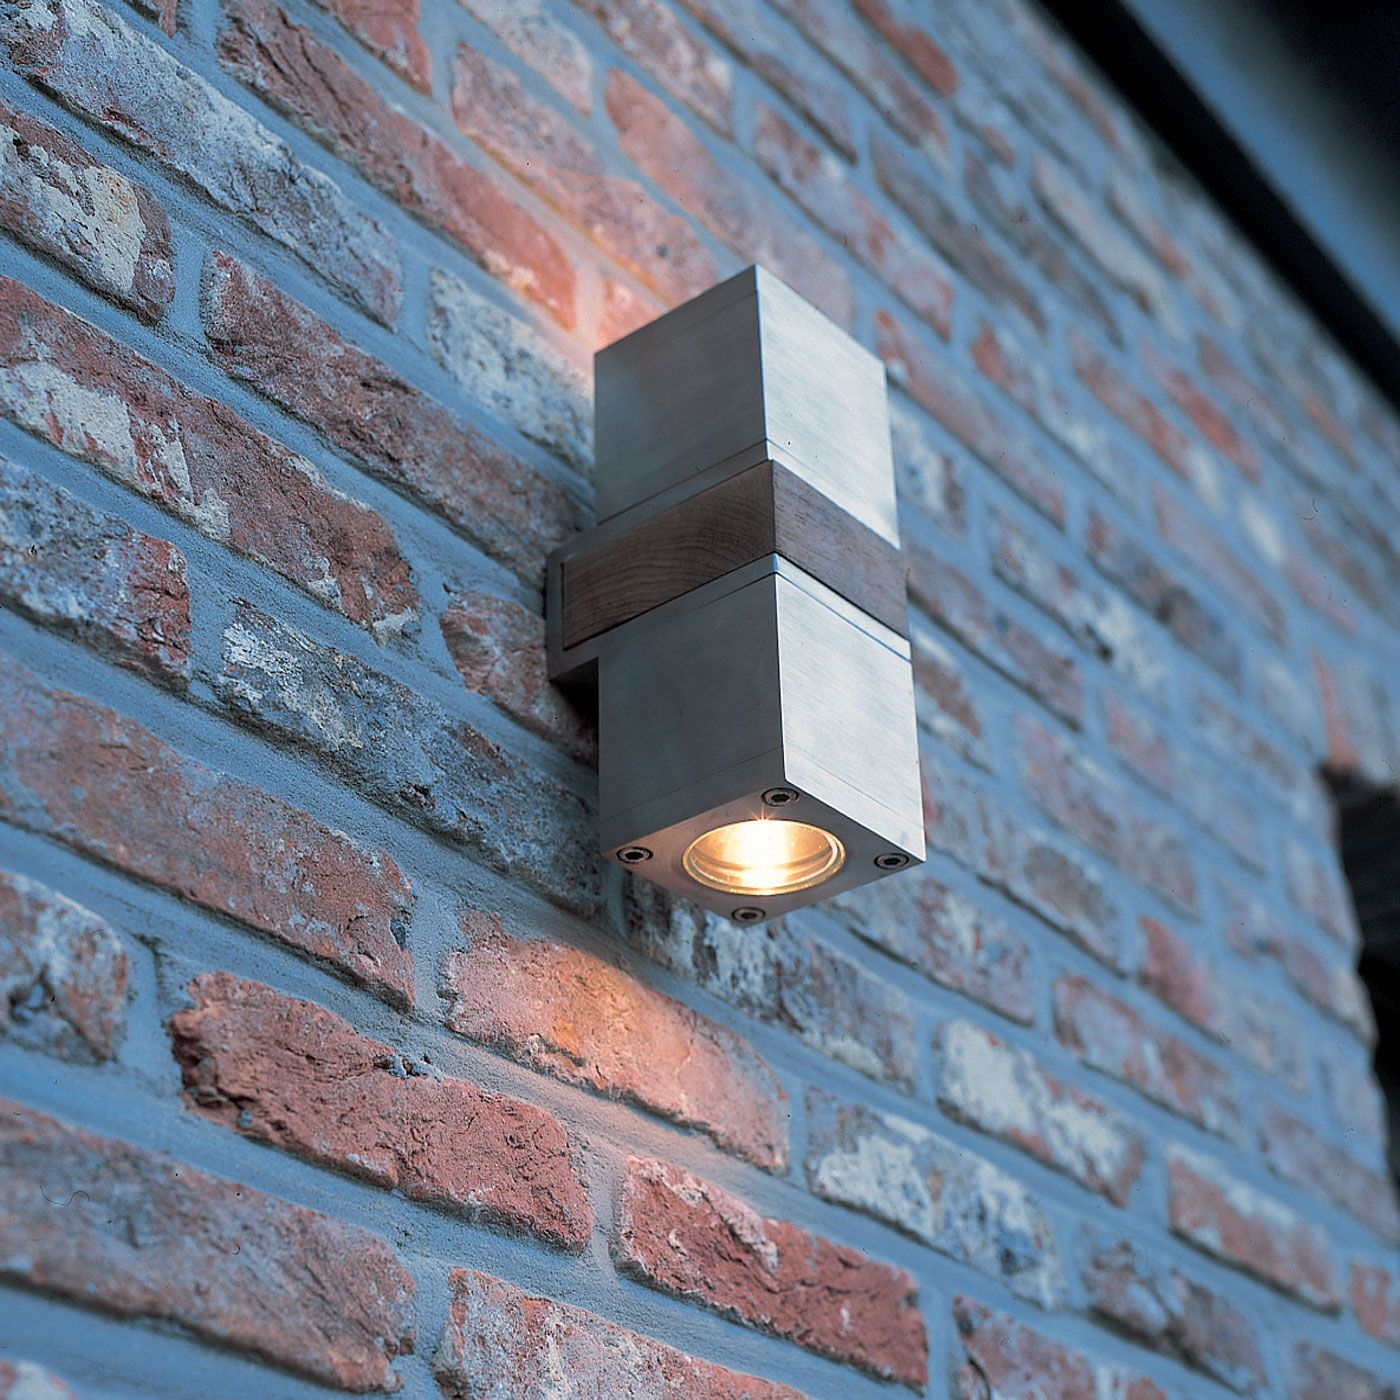 Outdoor lighting Q Bic Up Down Exterior Wall Sconce by Lightology